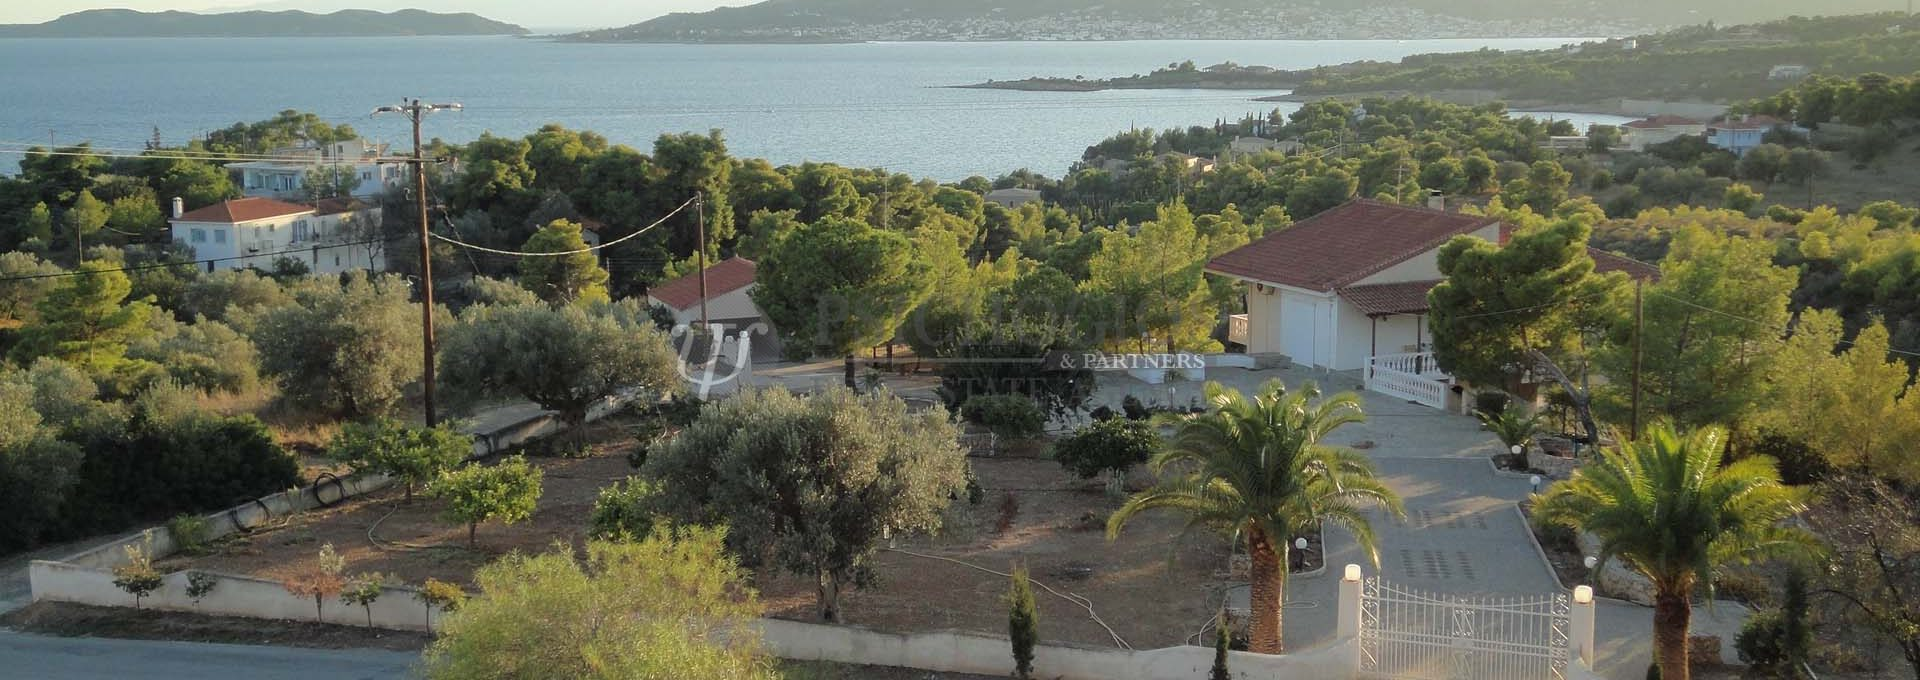 for_sale_house_120_square_meters_3_bedrooms_amazing_view_Agios_Amilianos_Greece (32)